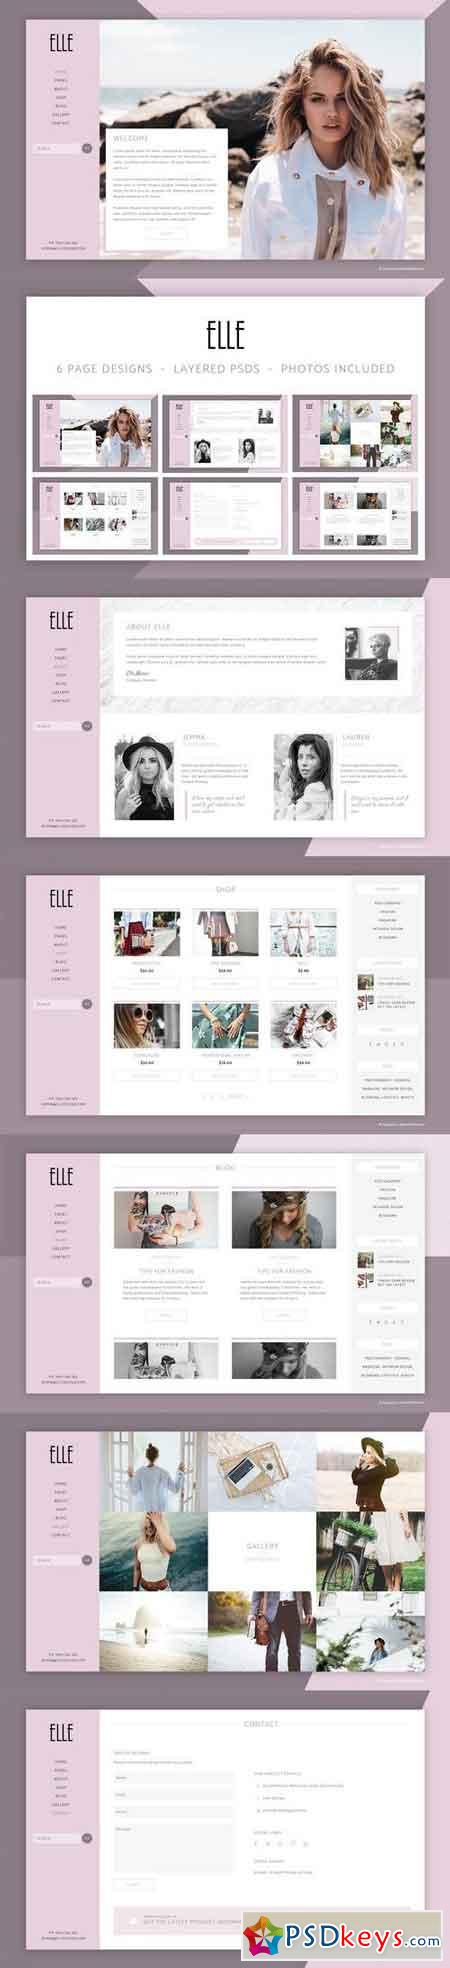 Elle Fashion Shop & Blog Website PSD 1479041